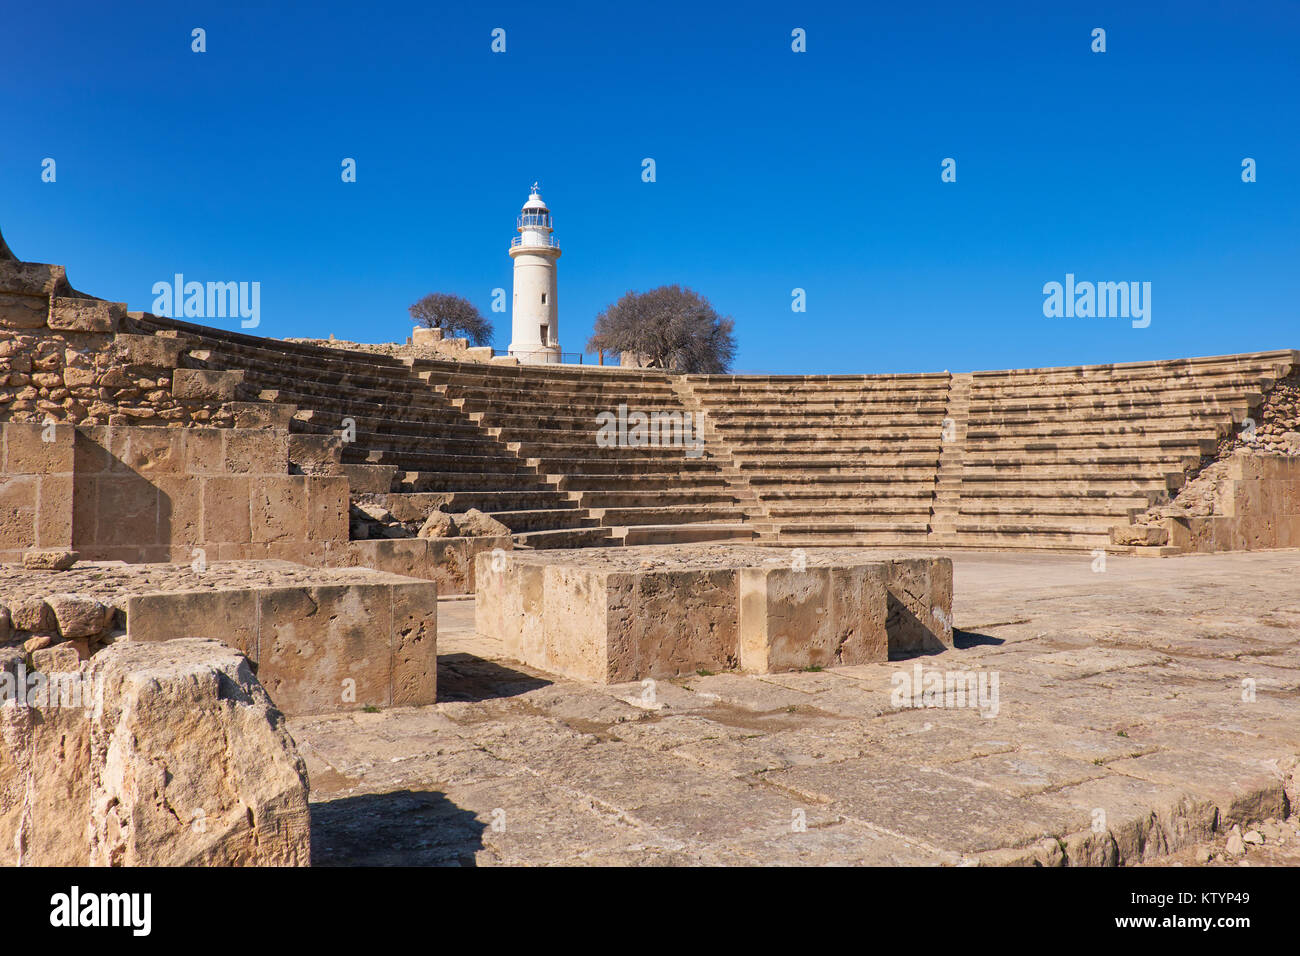 Ancient Greek amphitheater in archaeological site in Paphos, Cyprus, with a white lighthouse on the back Stock Photo